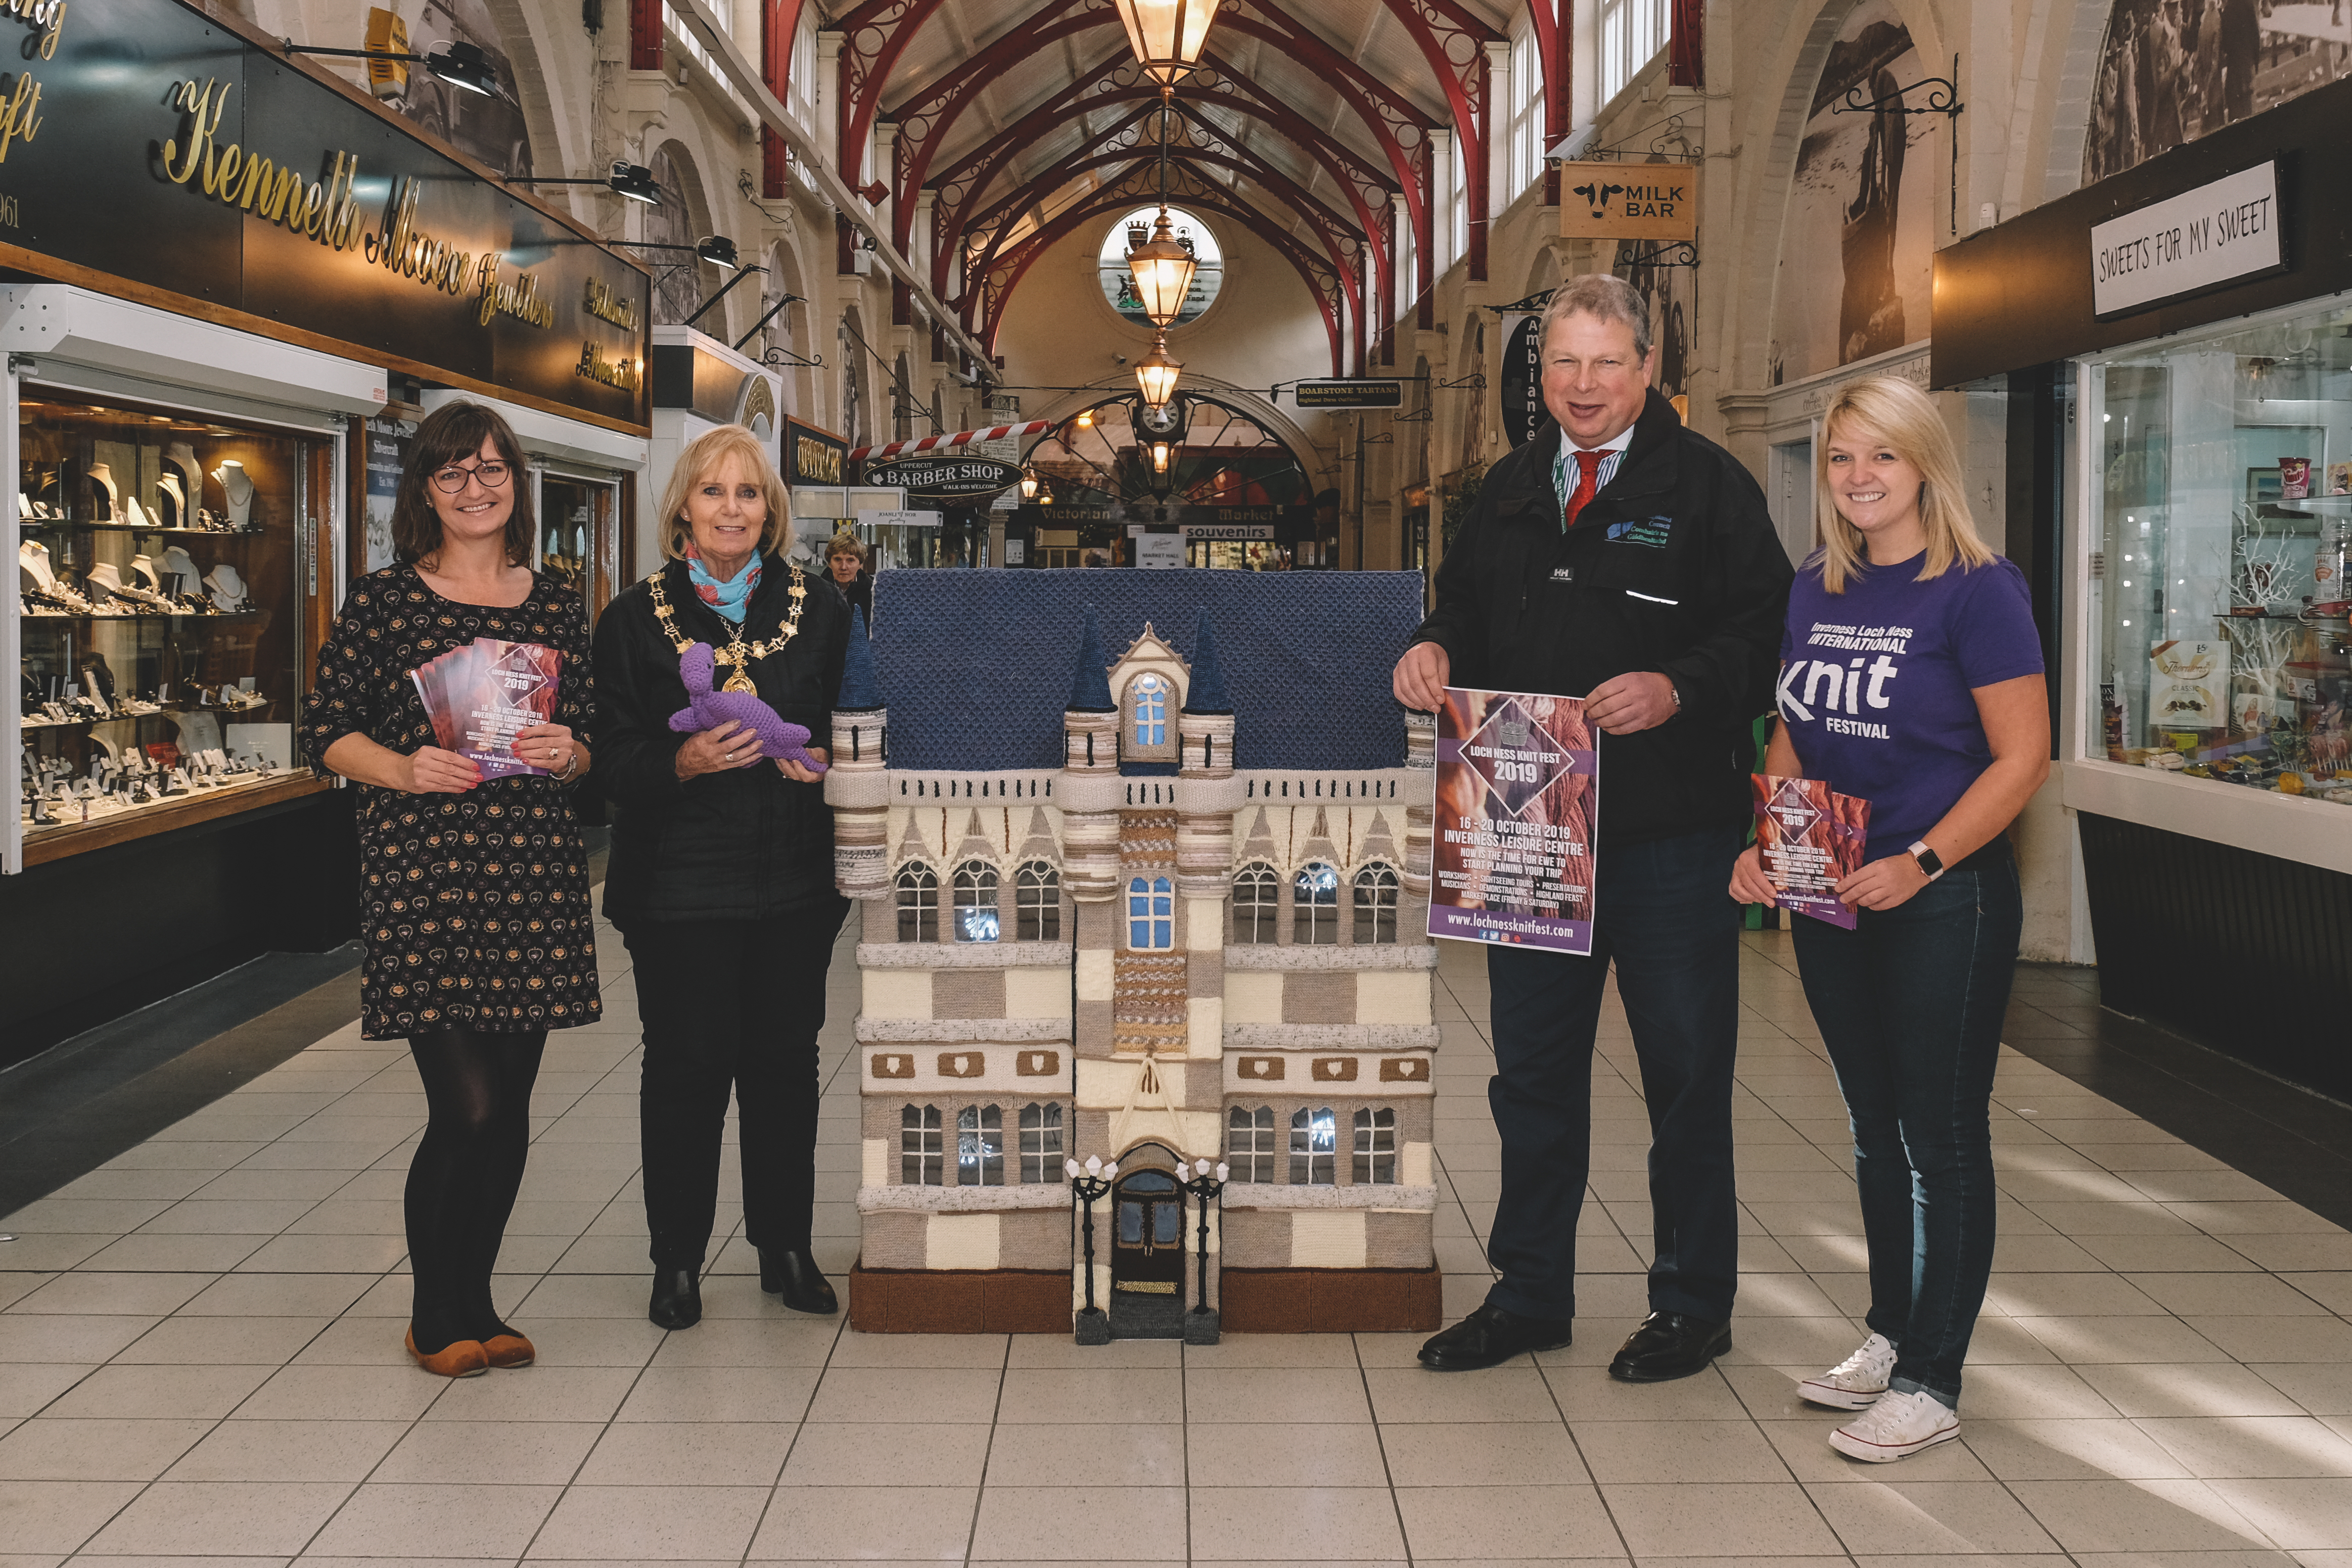 Jo Murray of Inverness Victorian Market,  and Provost Helen Carmichael pictured alongside the masterpiece with David Haas, Inverness City Manager and festival organiser Cecilia Grigor.